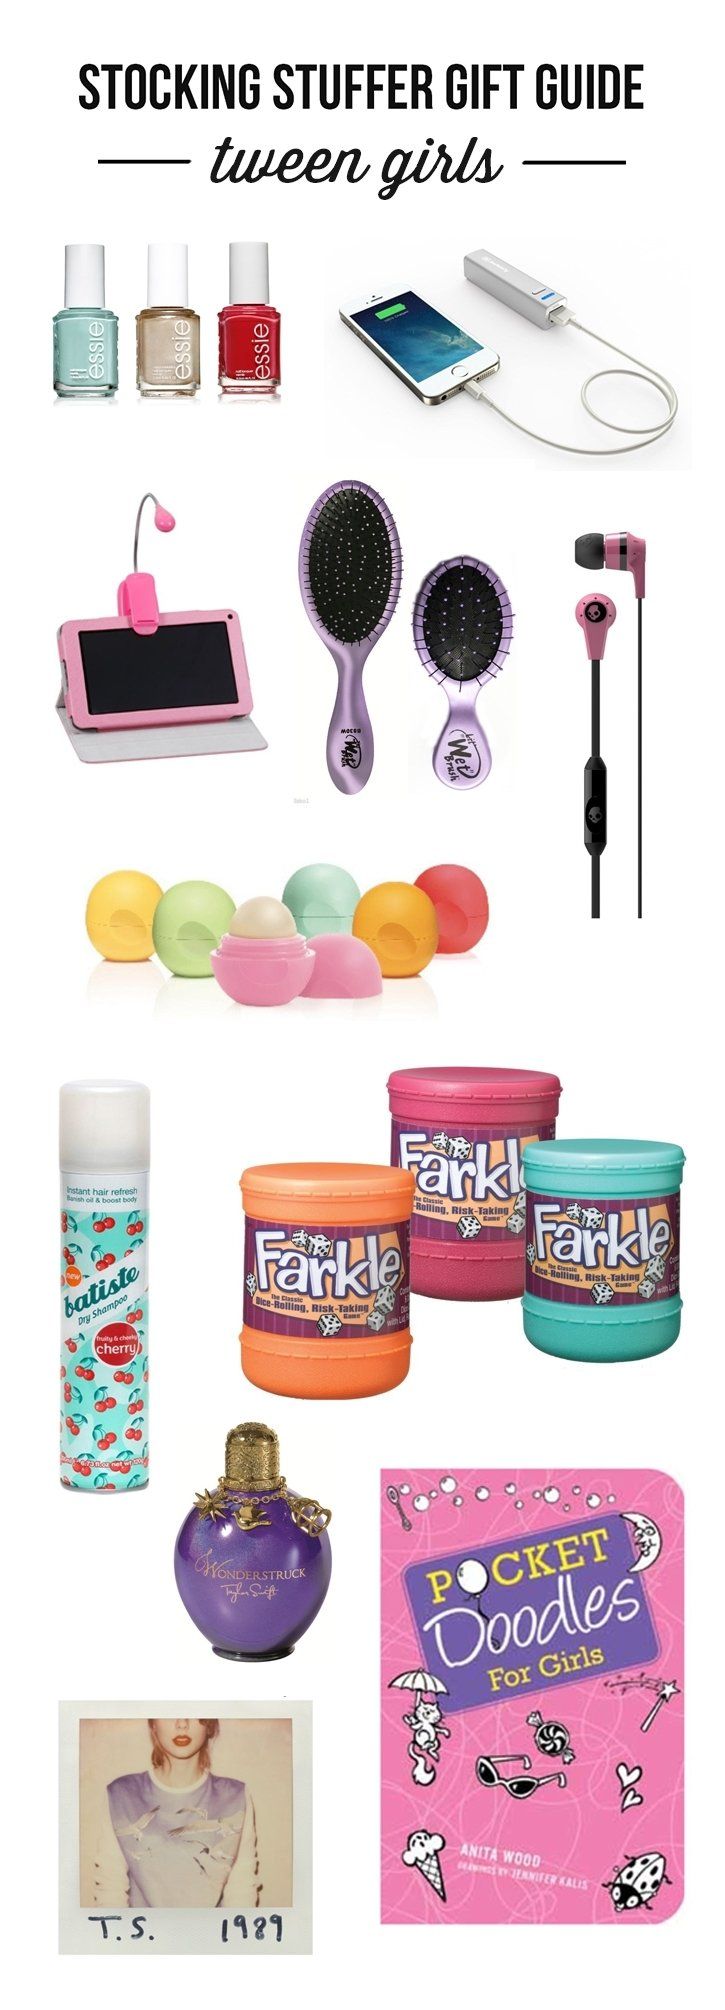 10 Great Gift Ideas For 12 Year Old Girls ultimate stocking stuffer gift guide for kids of all ages 2021